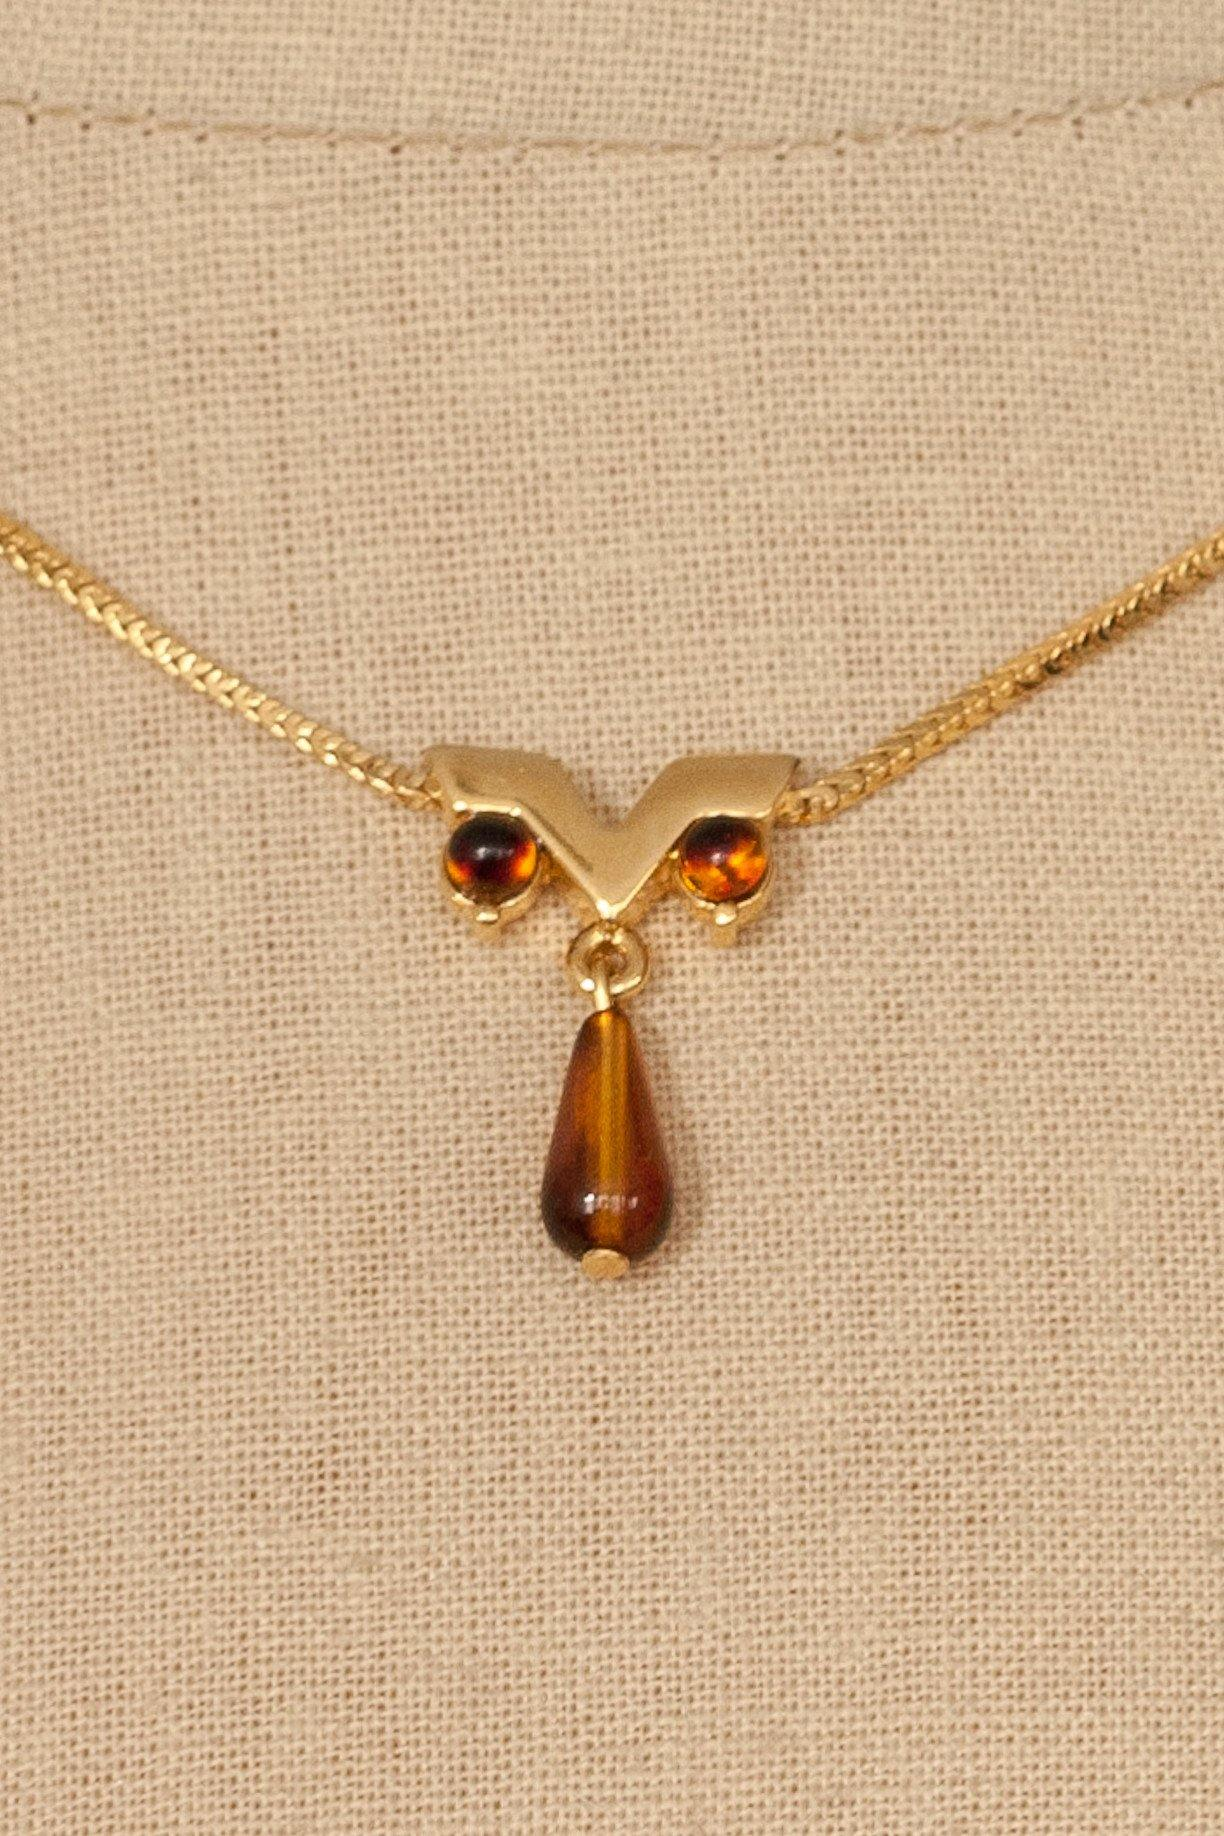 80's__Monet__Dainty Pendant Necklace